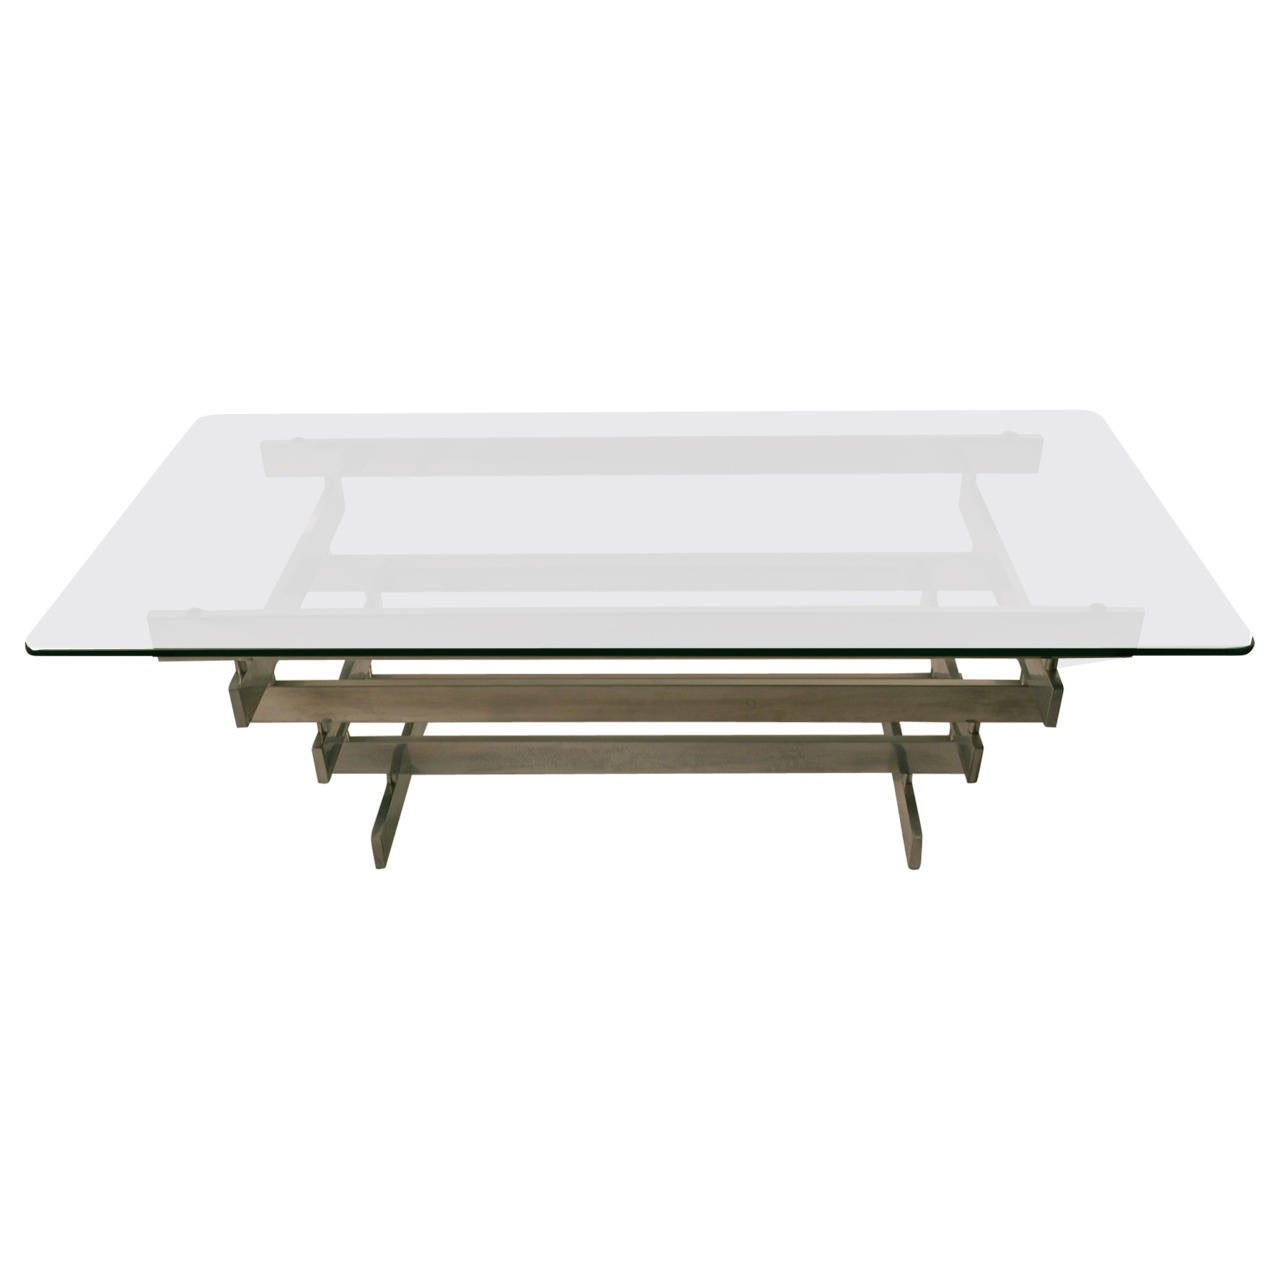 Superieur Stacked Aluminum Block Base Glass Top Coffee Table For Sale